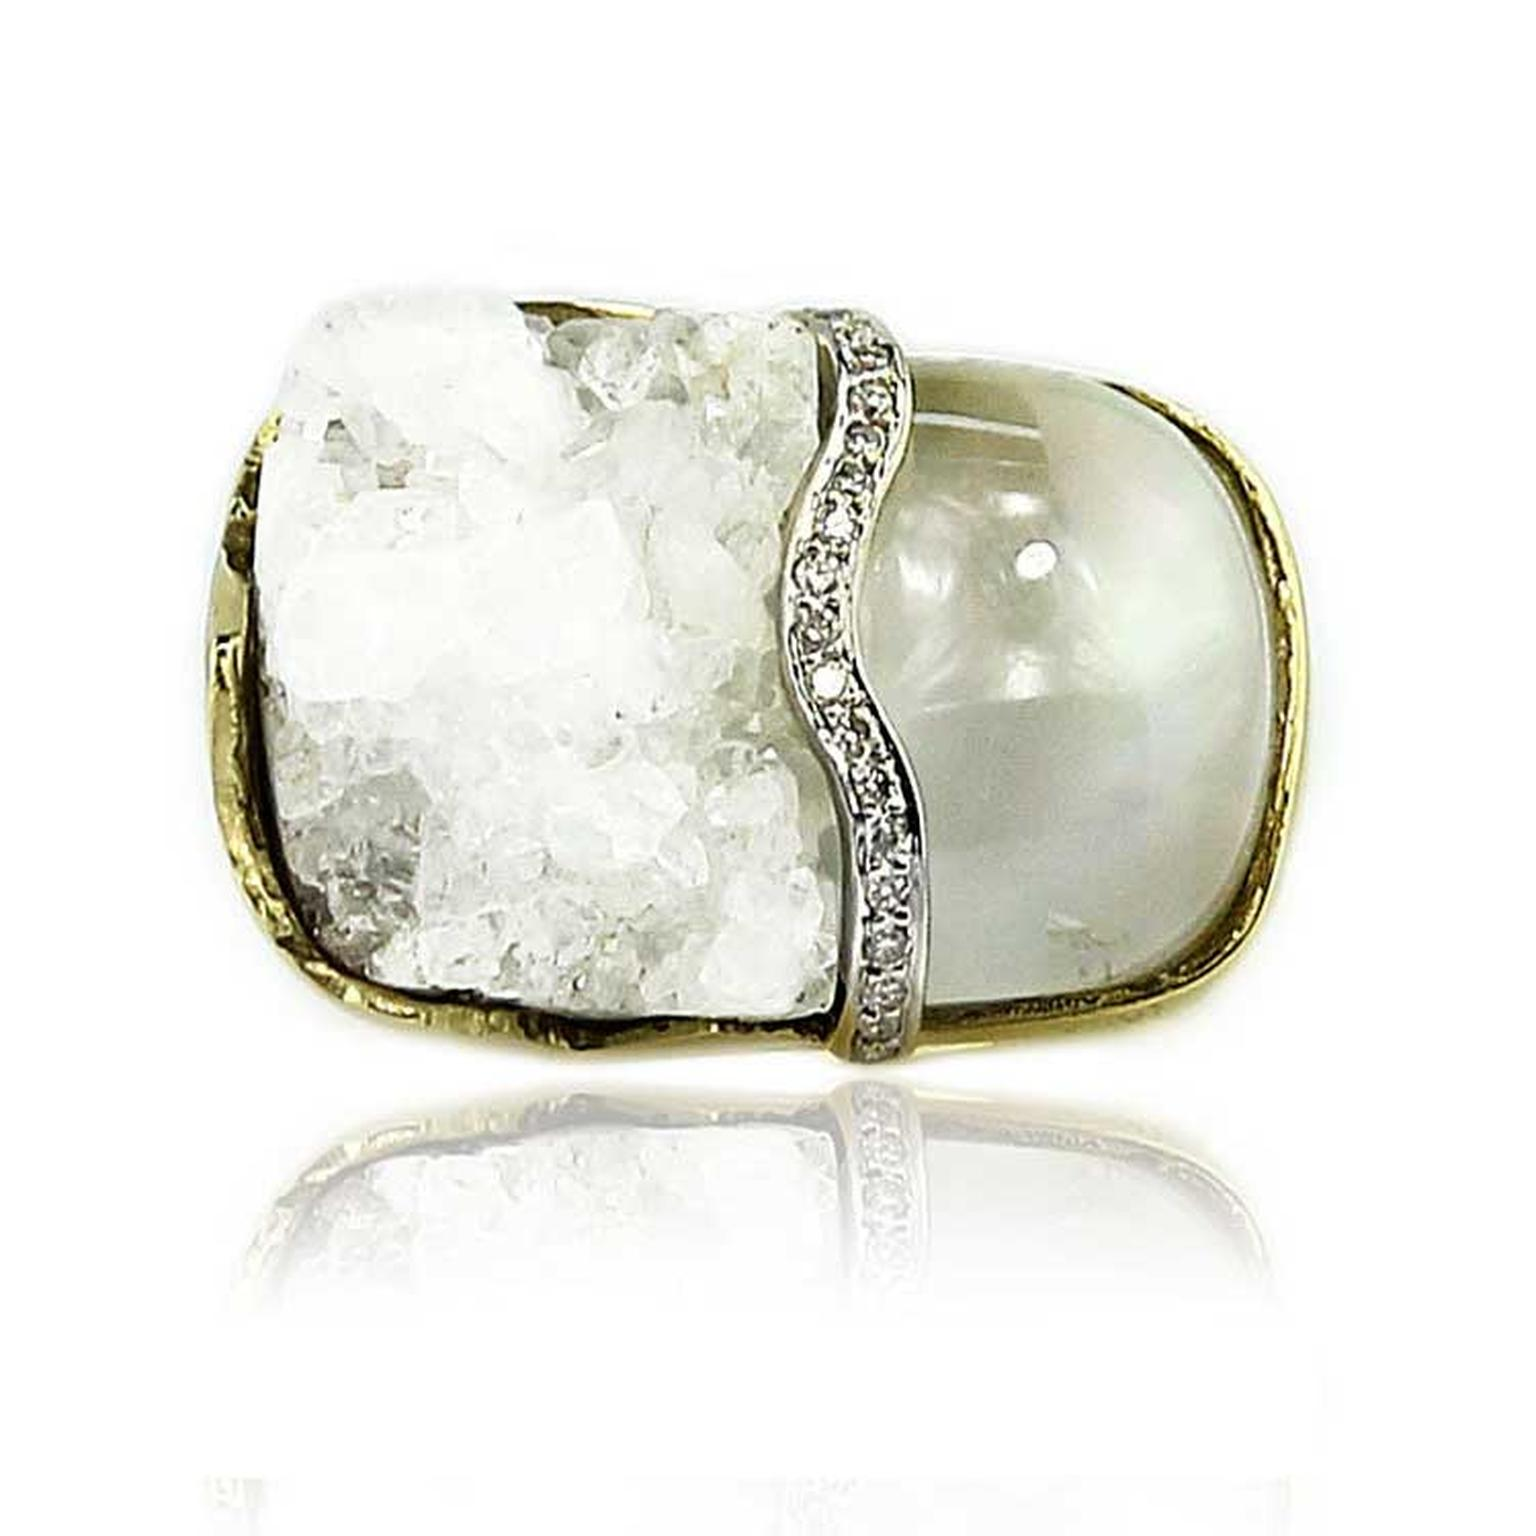 Kara Ross Petra Split ring with raw white quartz and smooth rock crystal front view